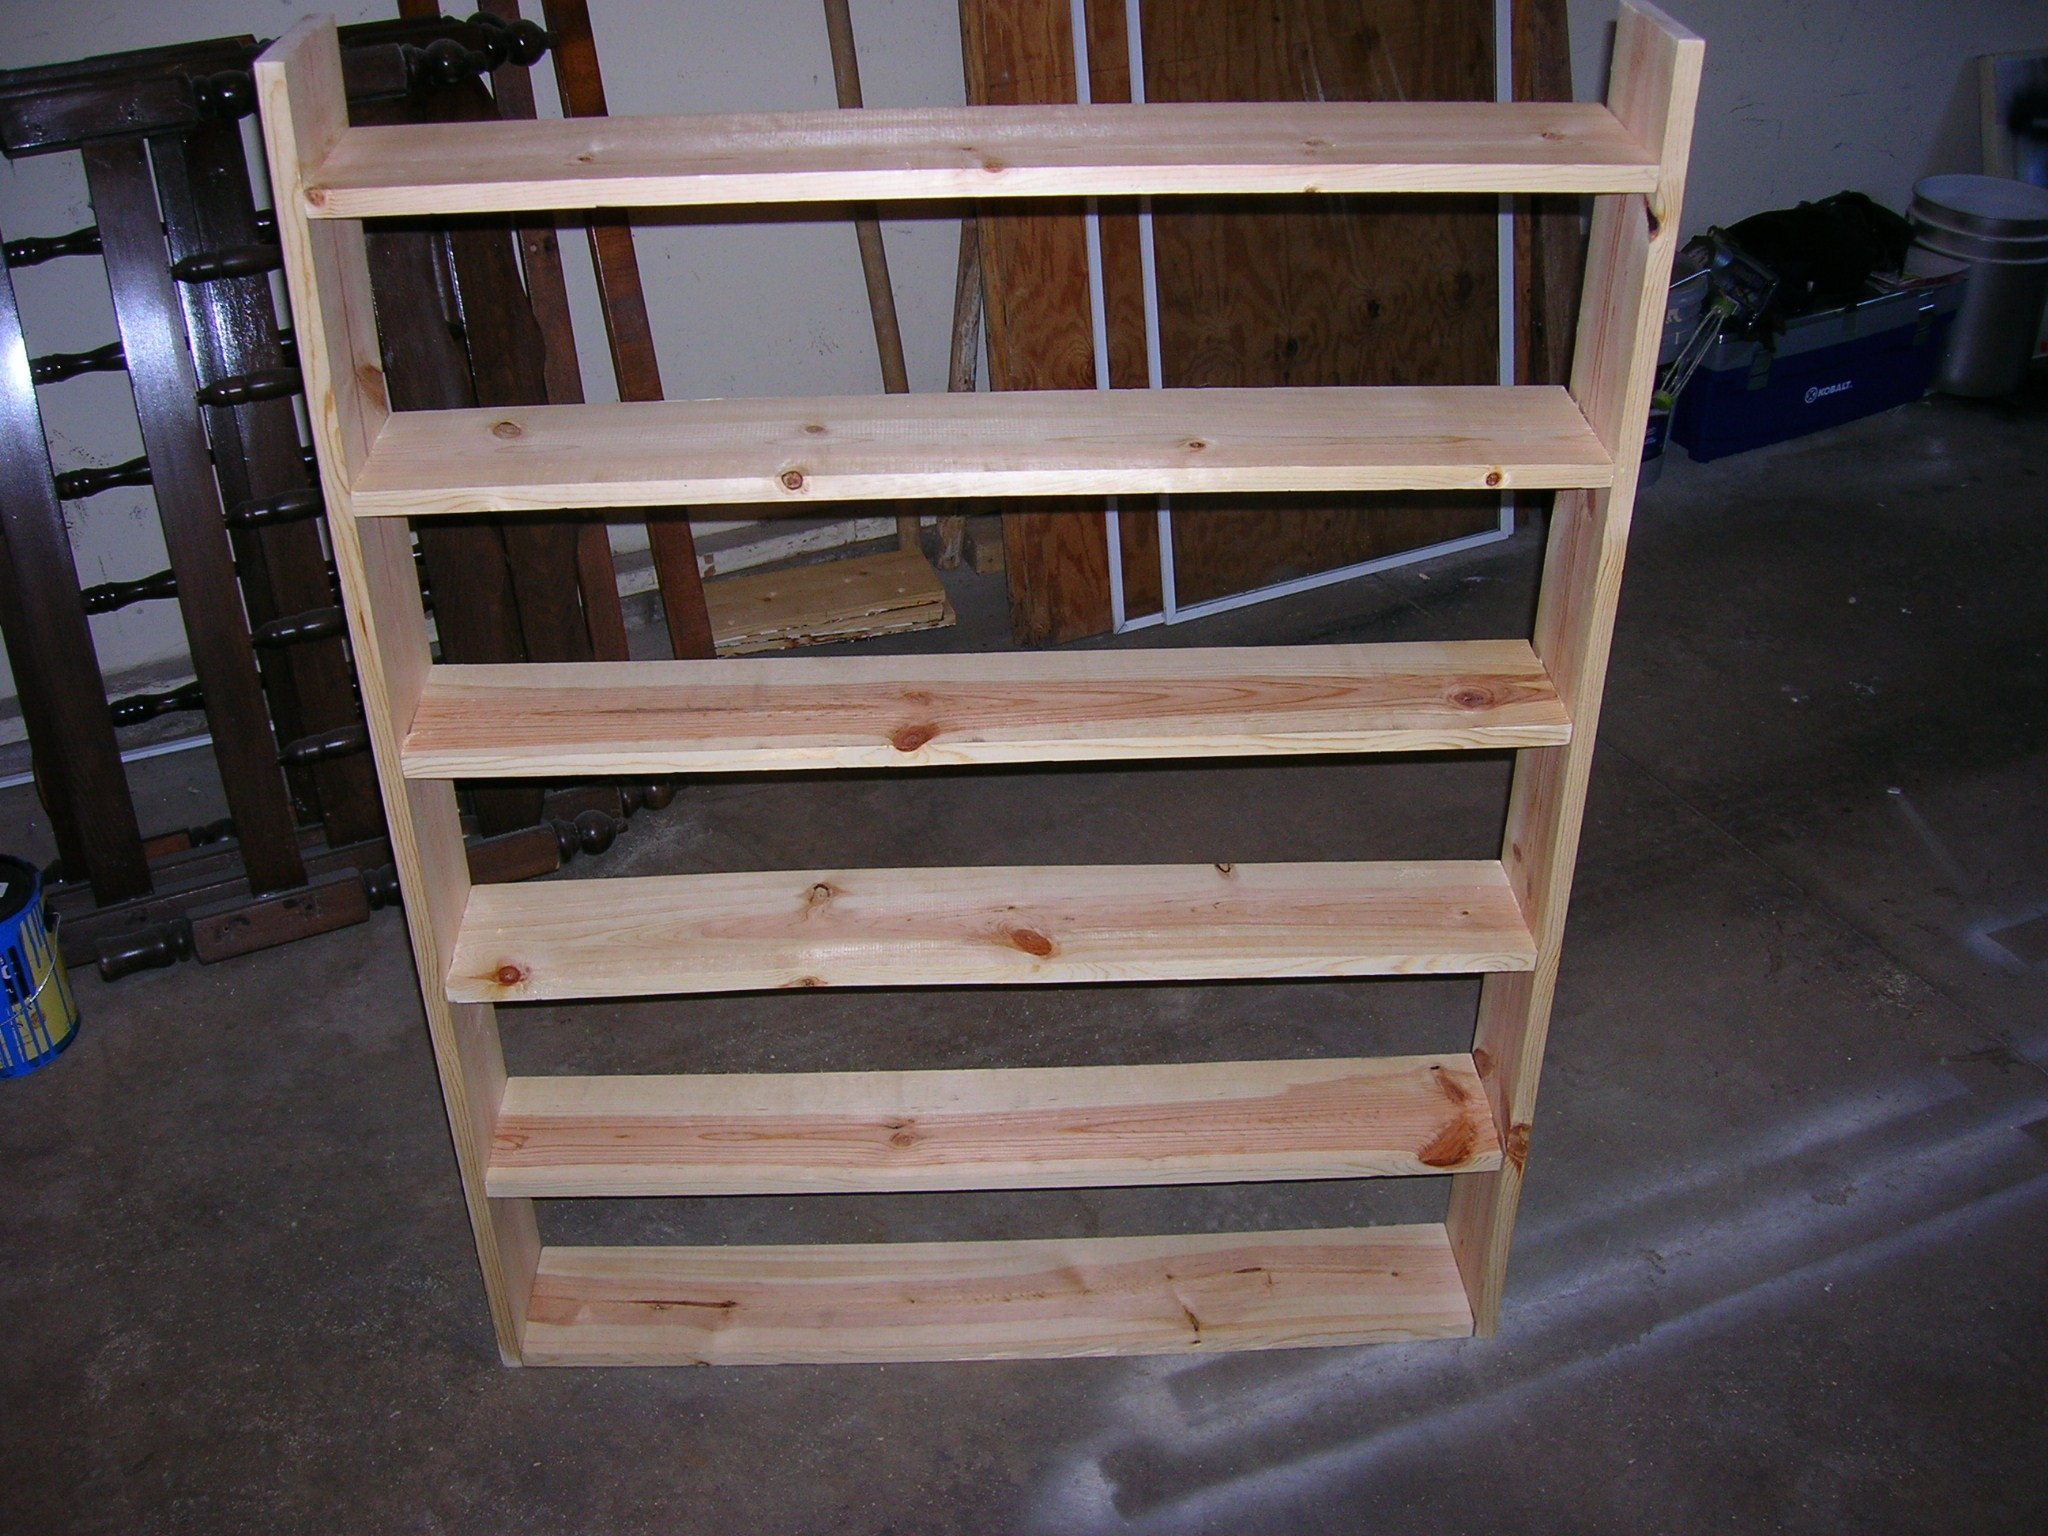 Wood Dvd Storage Cabinet Plansdvd shelving for 20 ish 6 steps